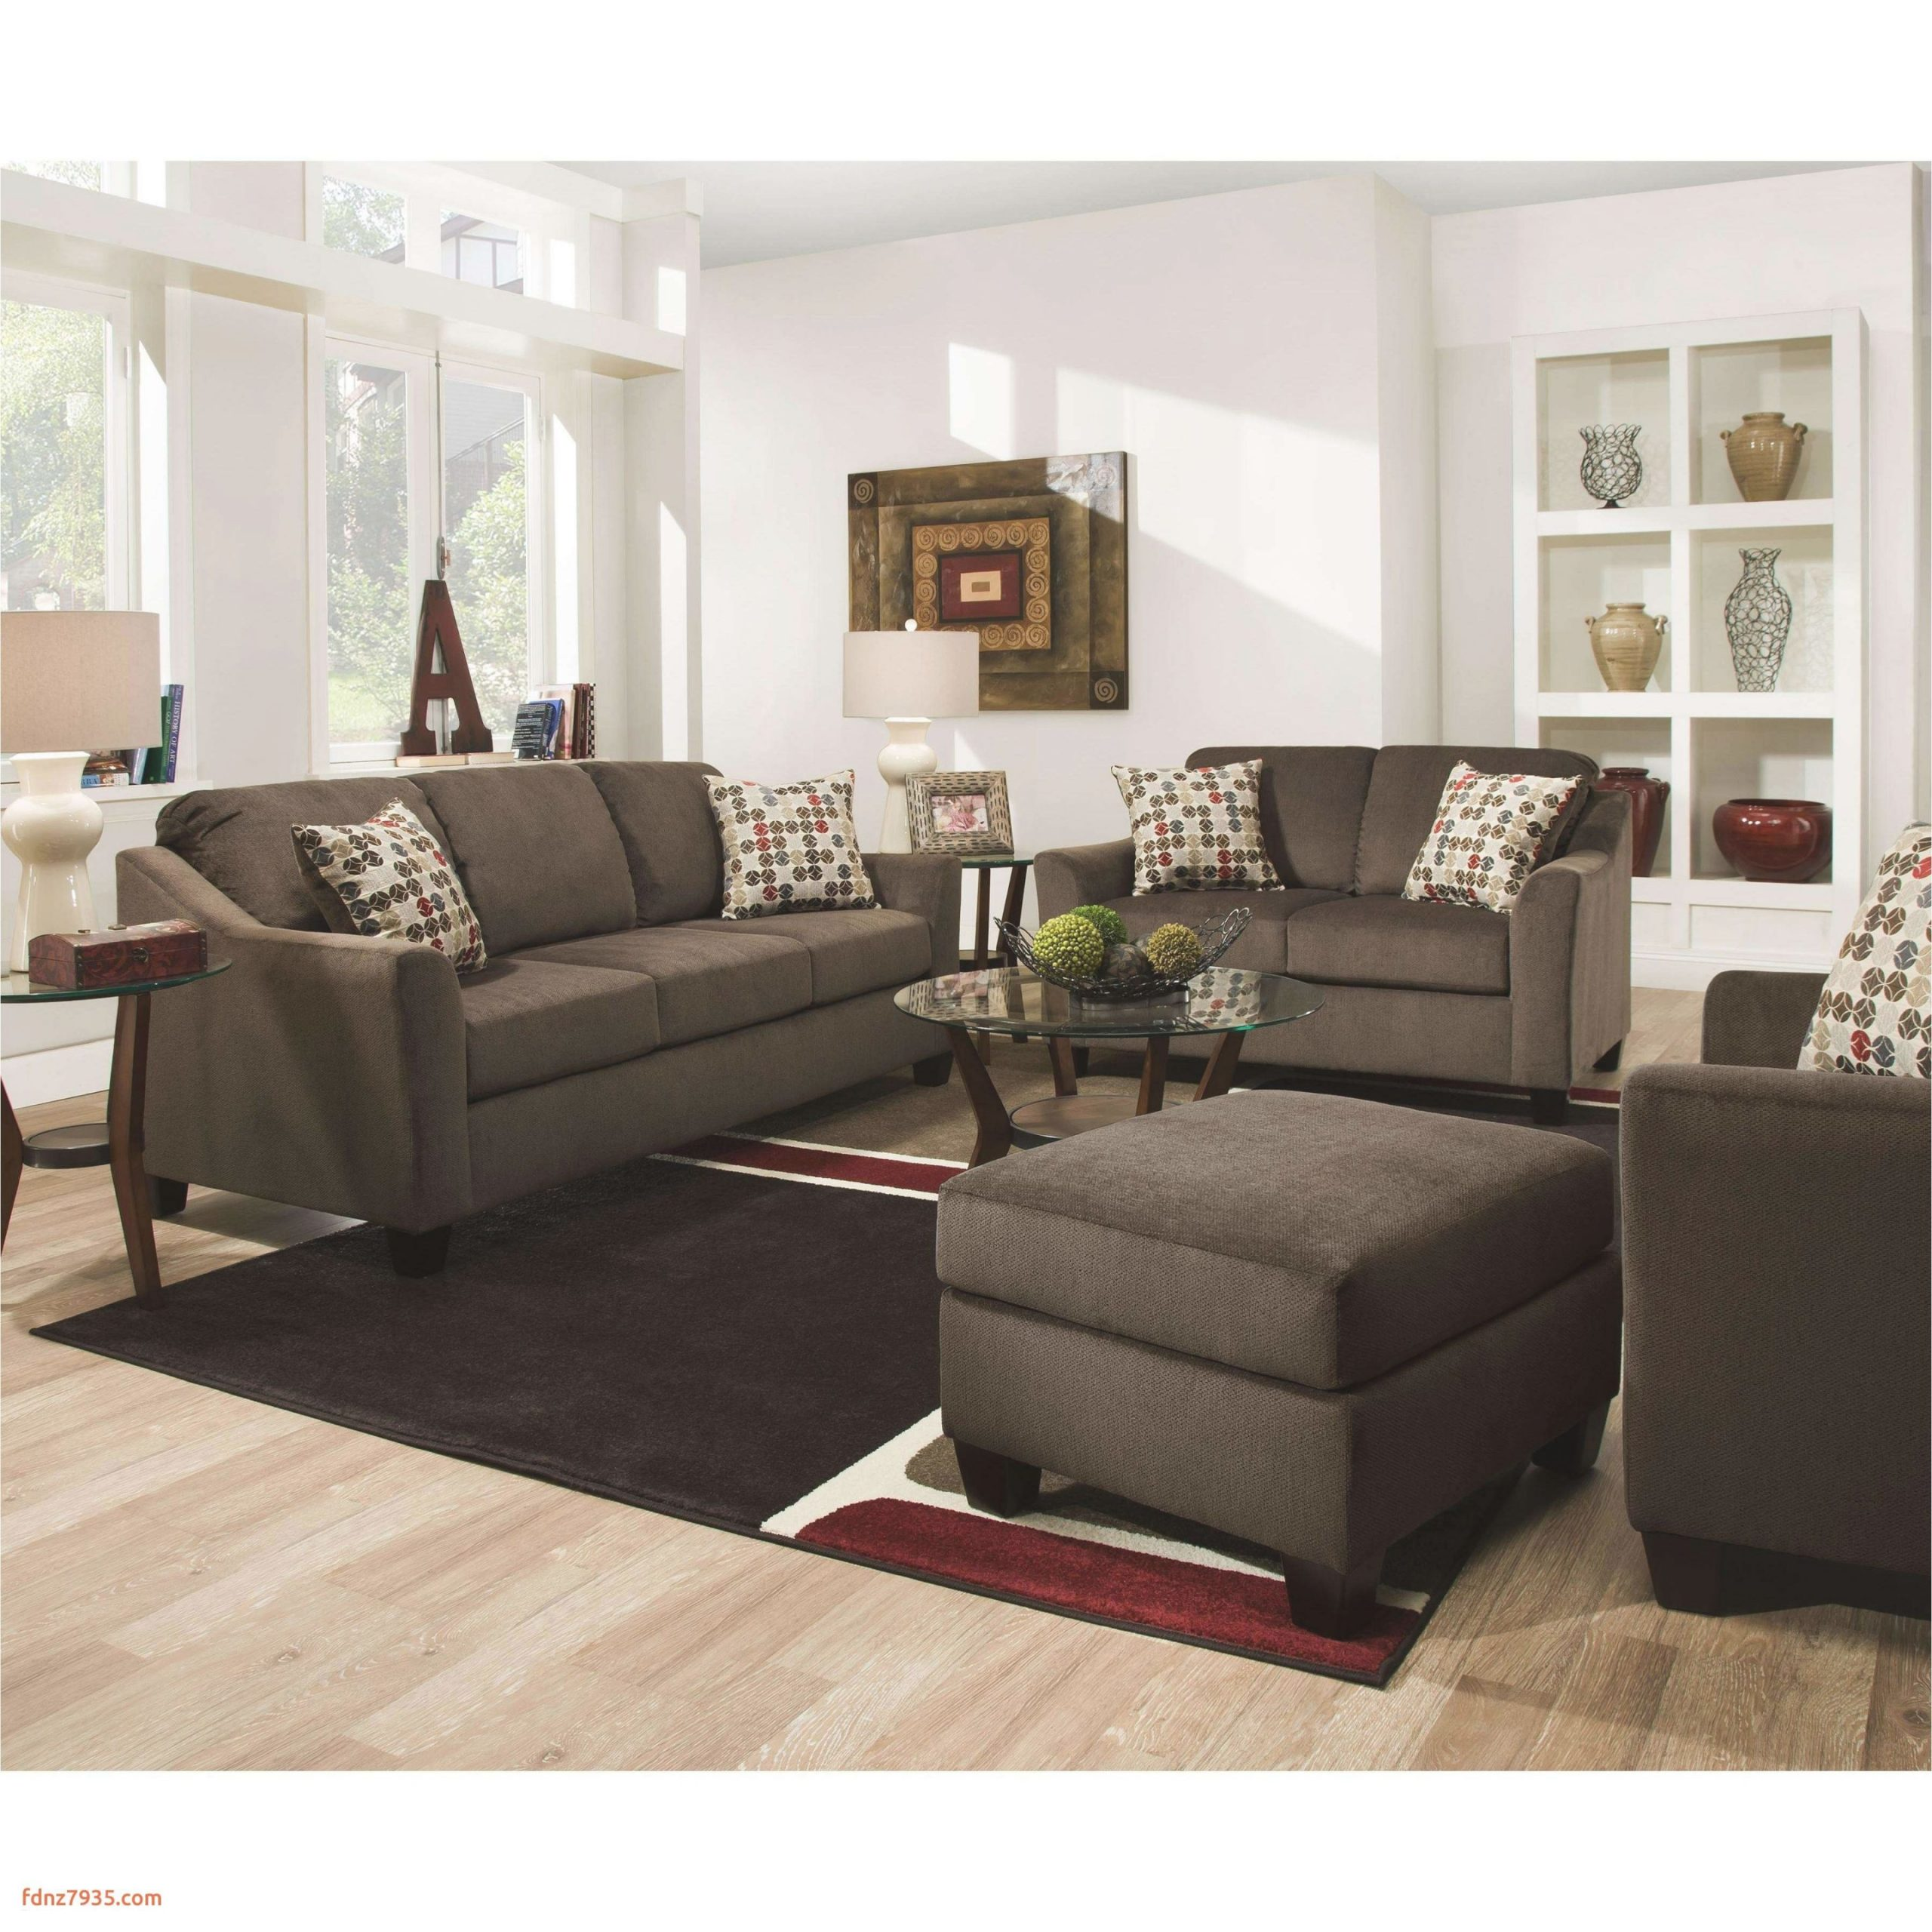 29 Latest Taupe Sofa With African Decor Ideas Wallpaper in Beautiful Taupe Bedroom Decorating Ideas